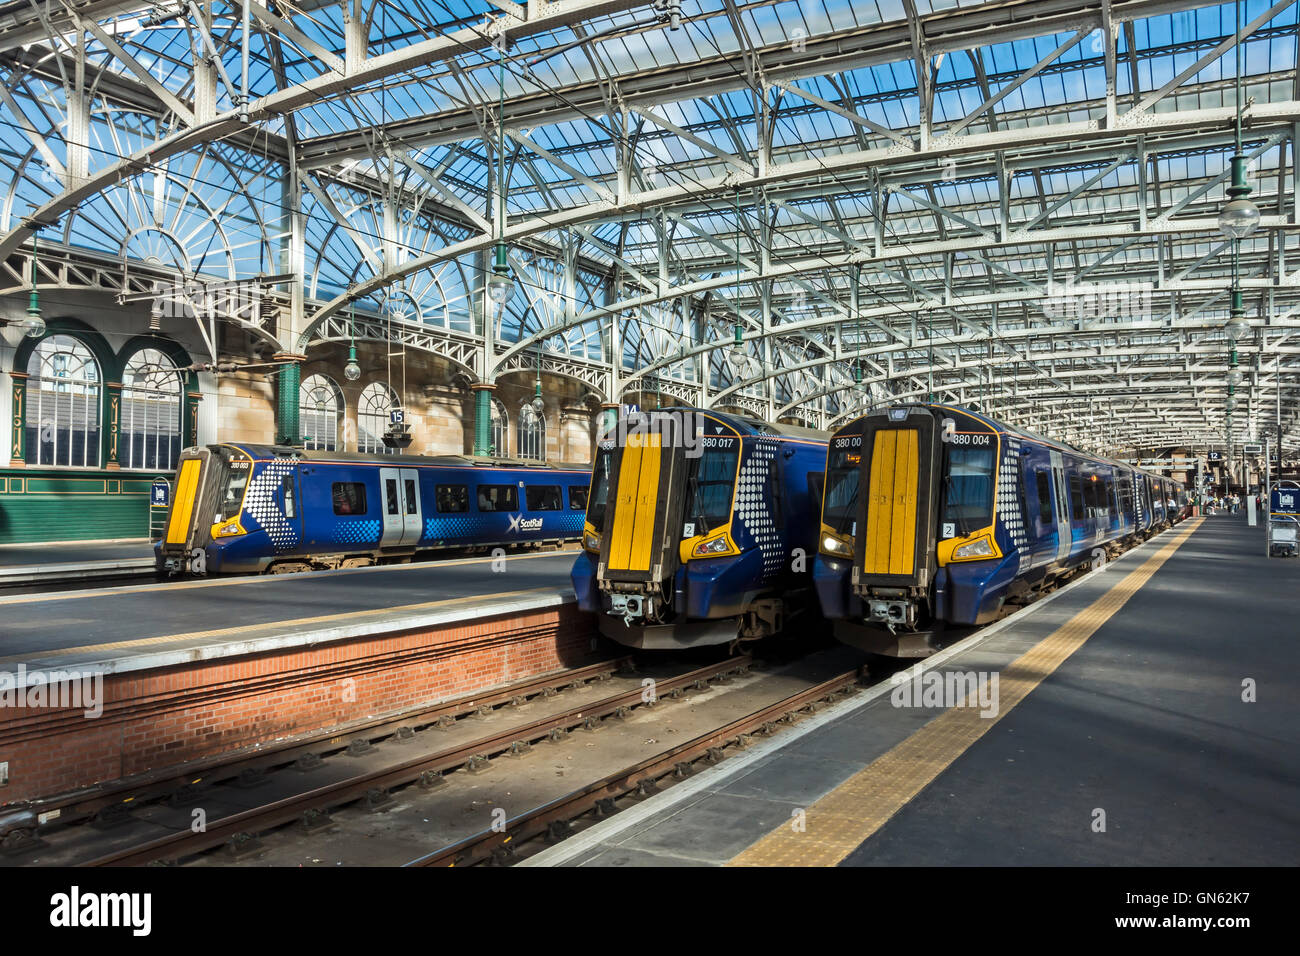 Three Class 380 EMU trains side by side in Glasgow Central Station Glasgow Scotland - Stock Image